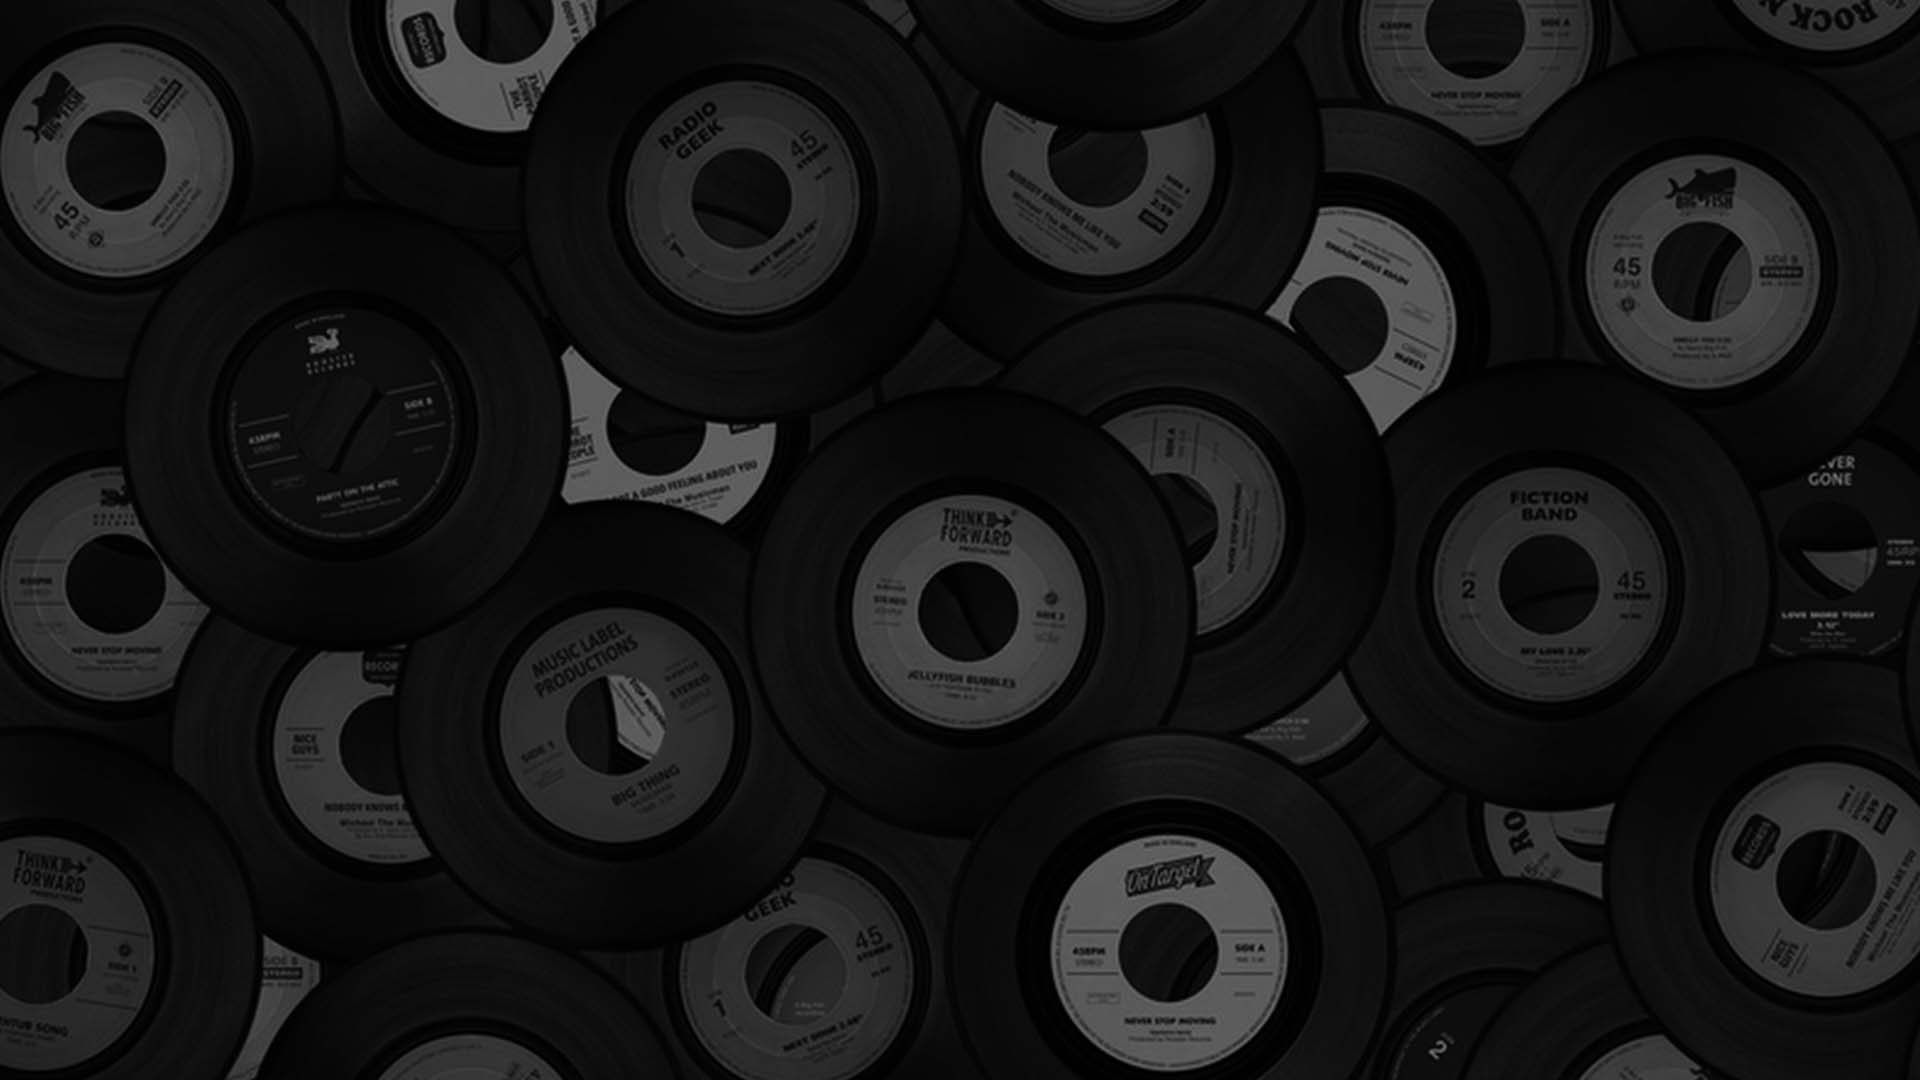 MANAGEMENT FOR RECORD LABELS